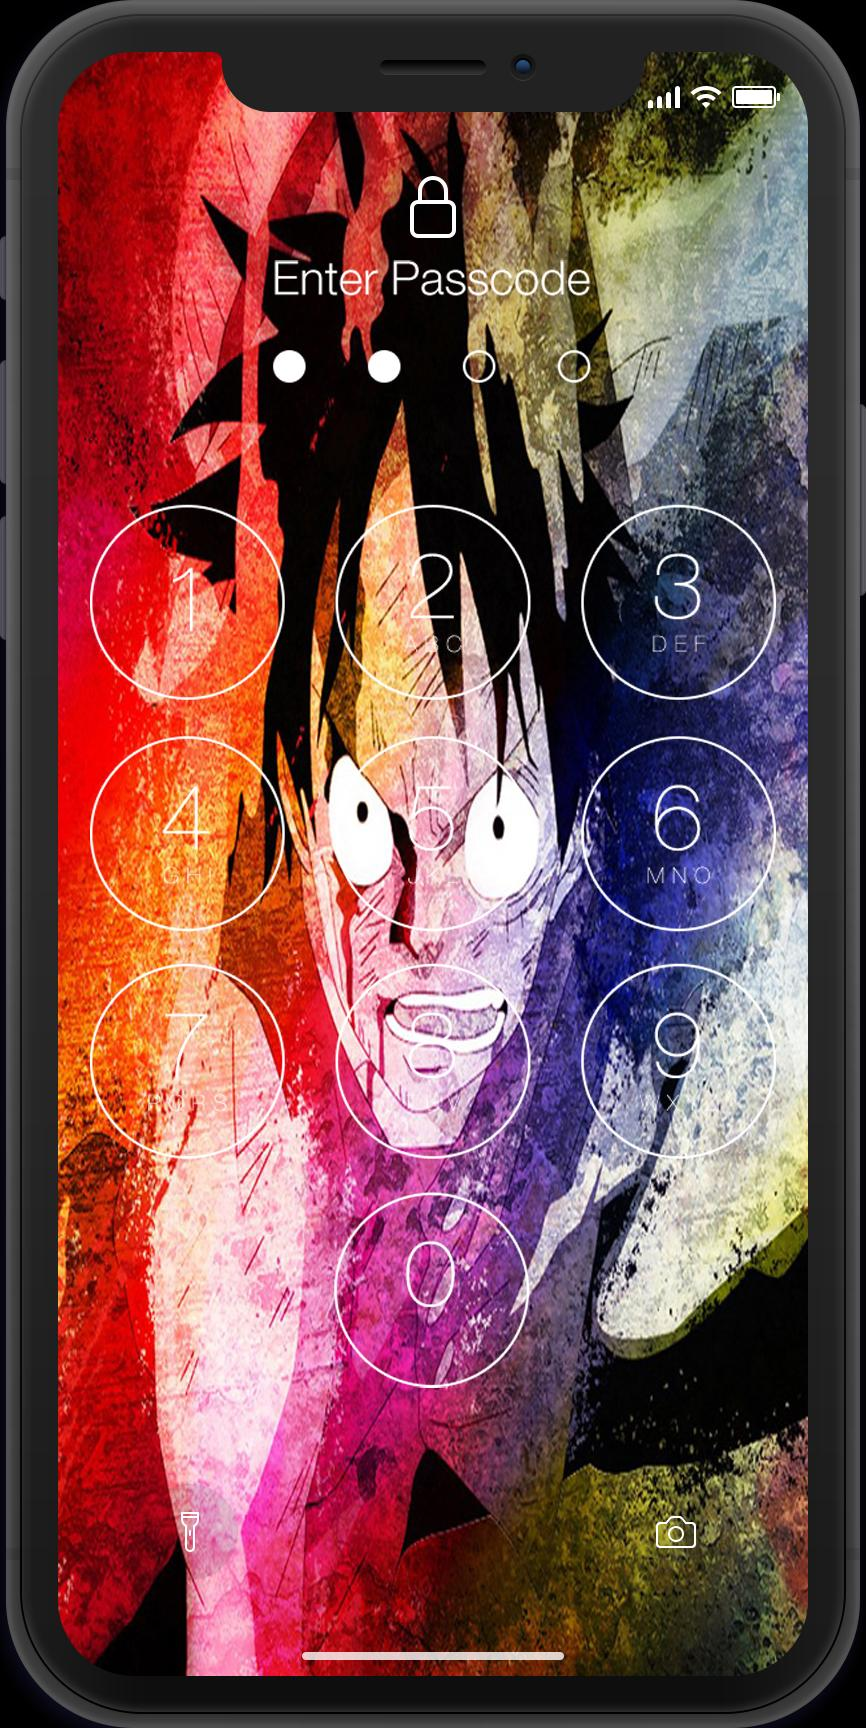 Lock Screen For One Piece Luffy 2018 For Android Apk Download